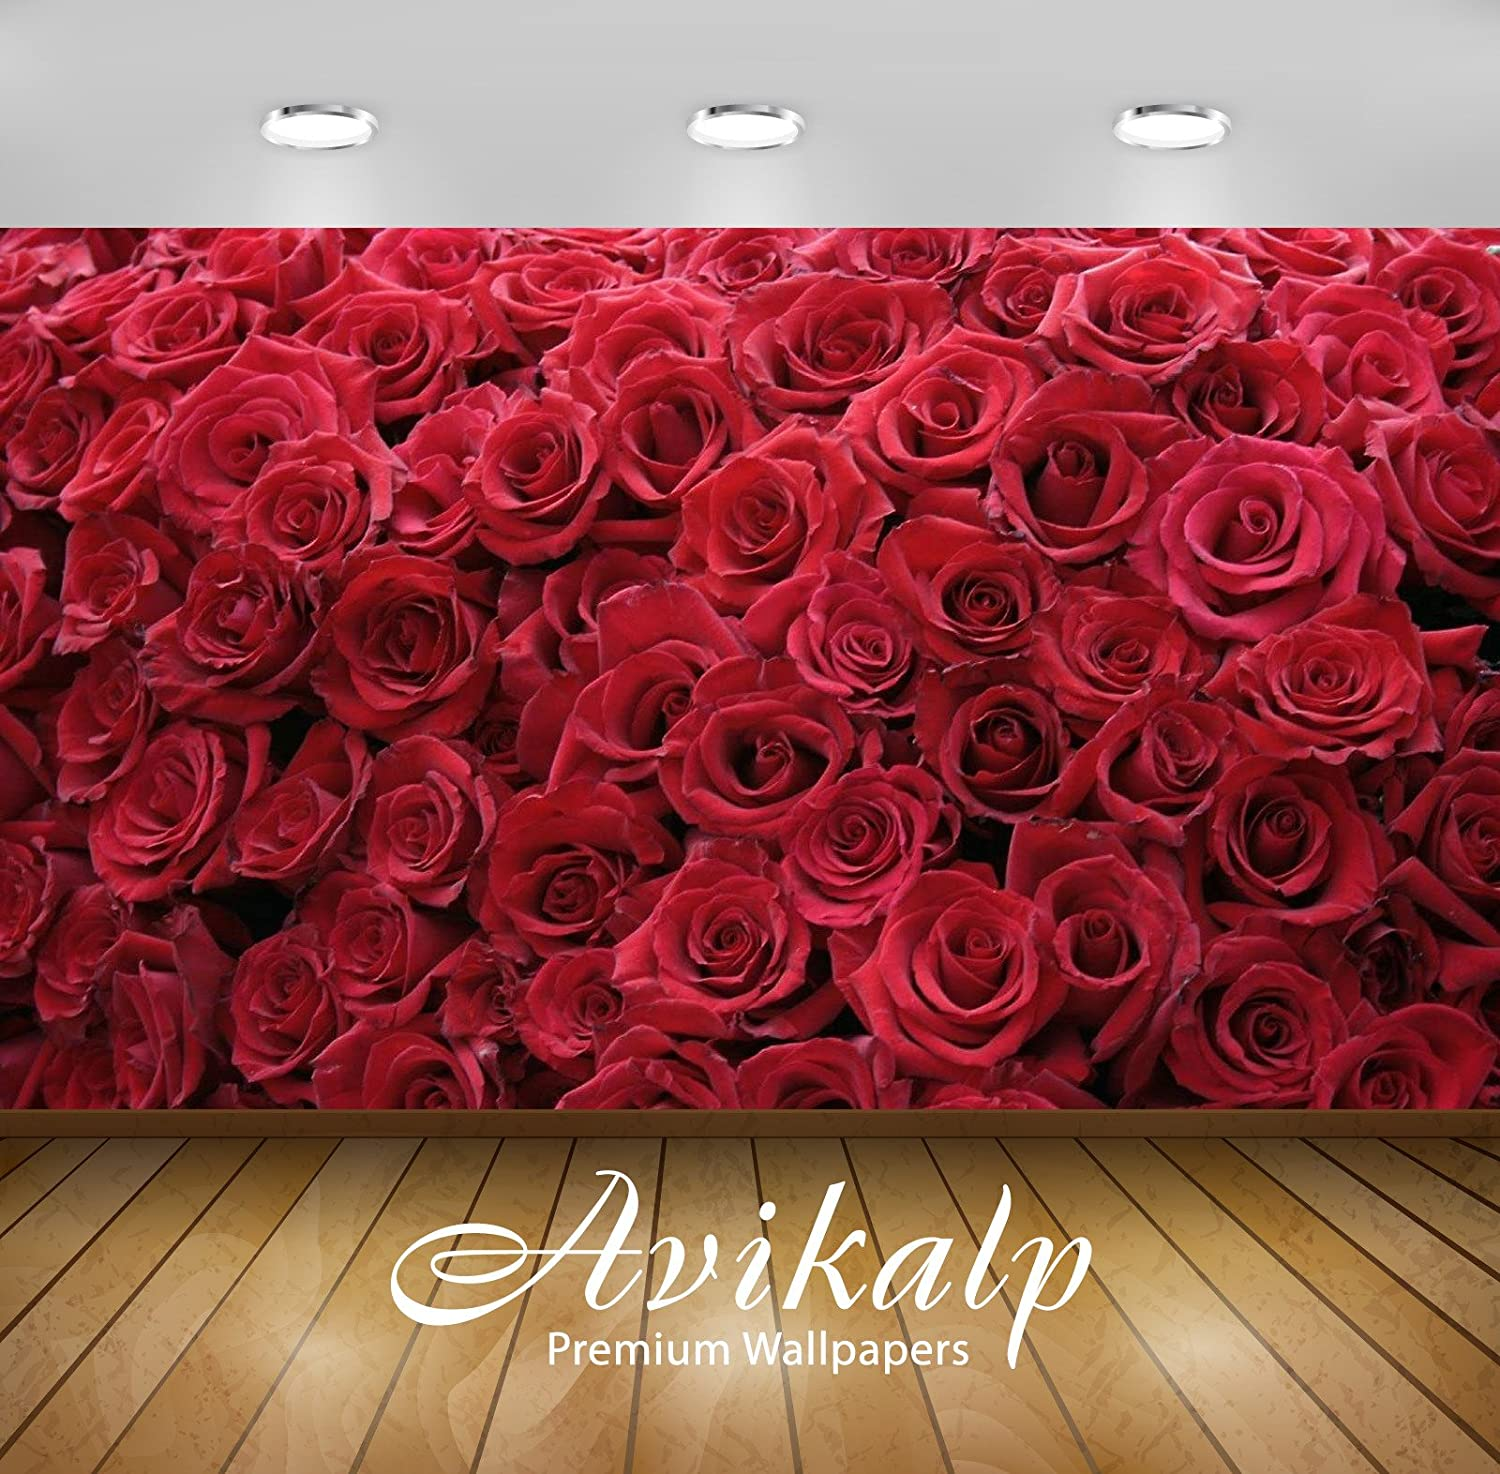 Buy Avikalp Exclusive Awi3268 Red Roses Flowers Full Hd Wallpapers 4 X 3 Ft Online At Low Prices In India Amazon In